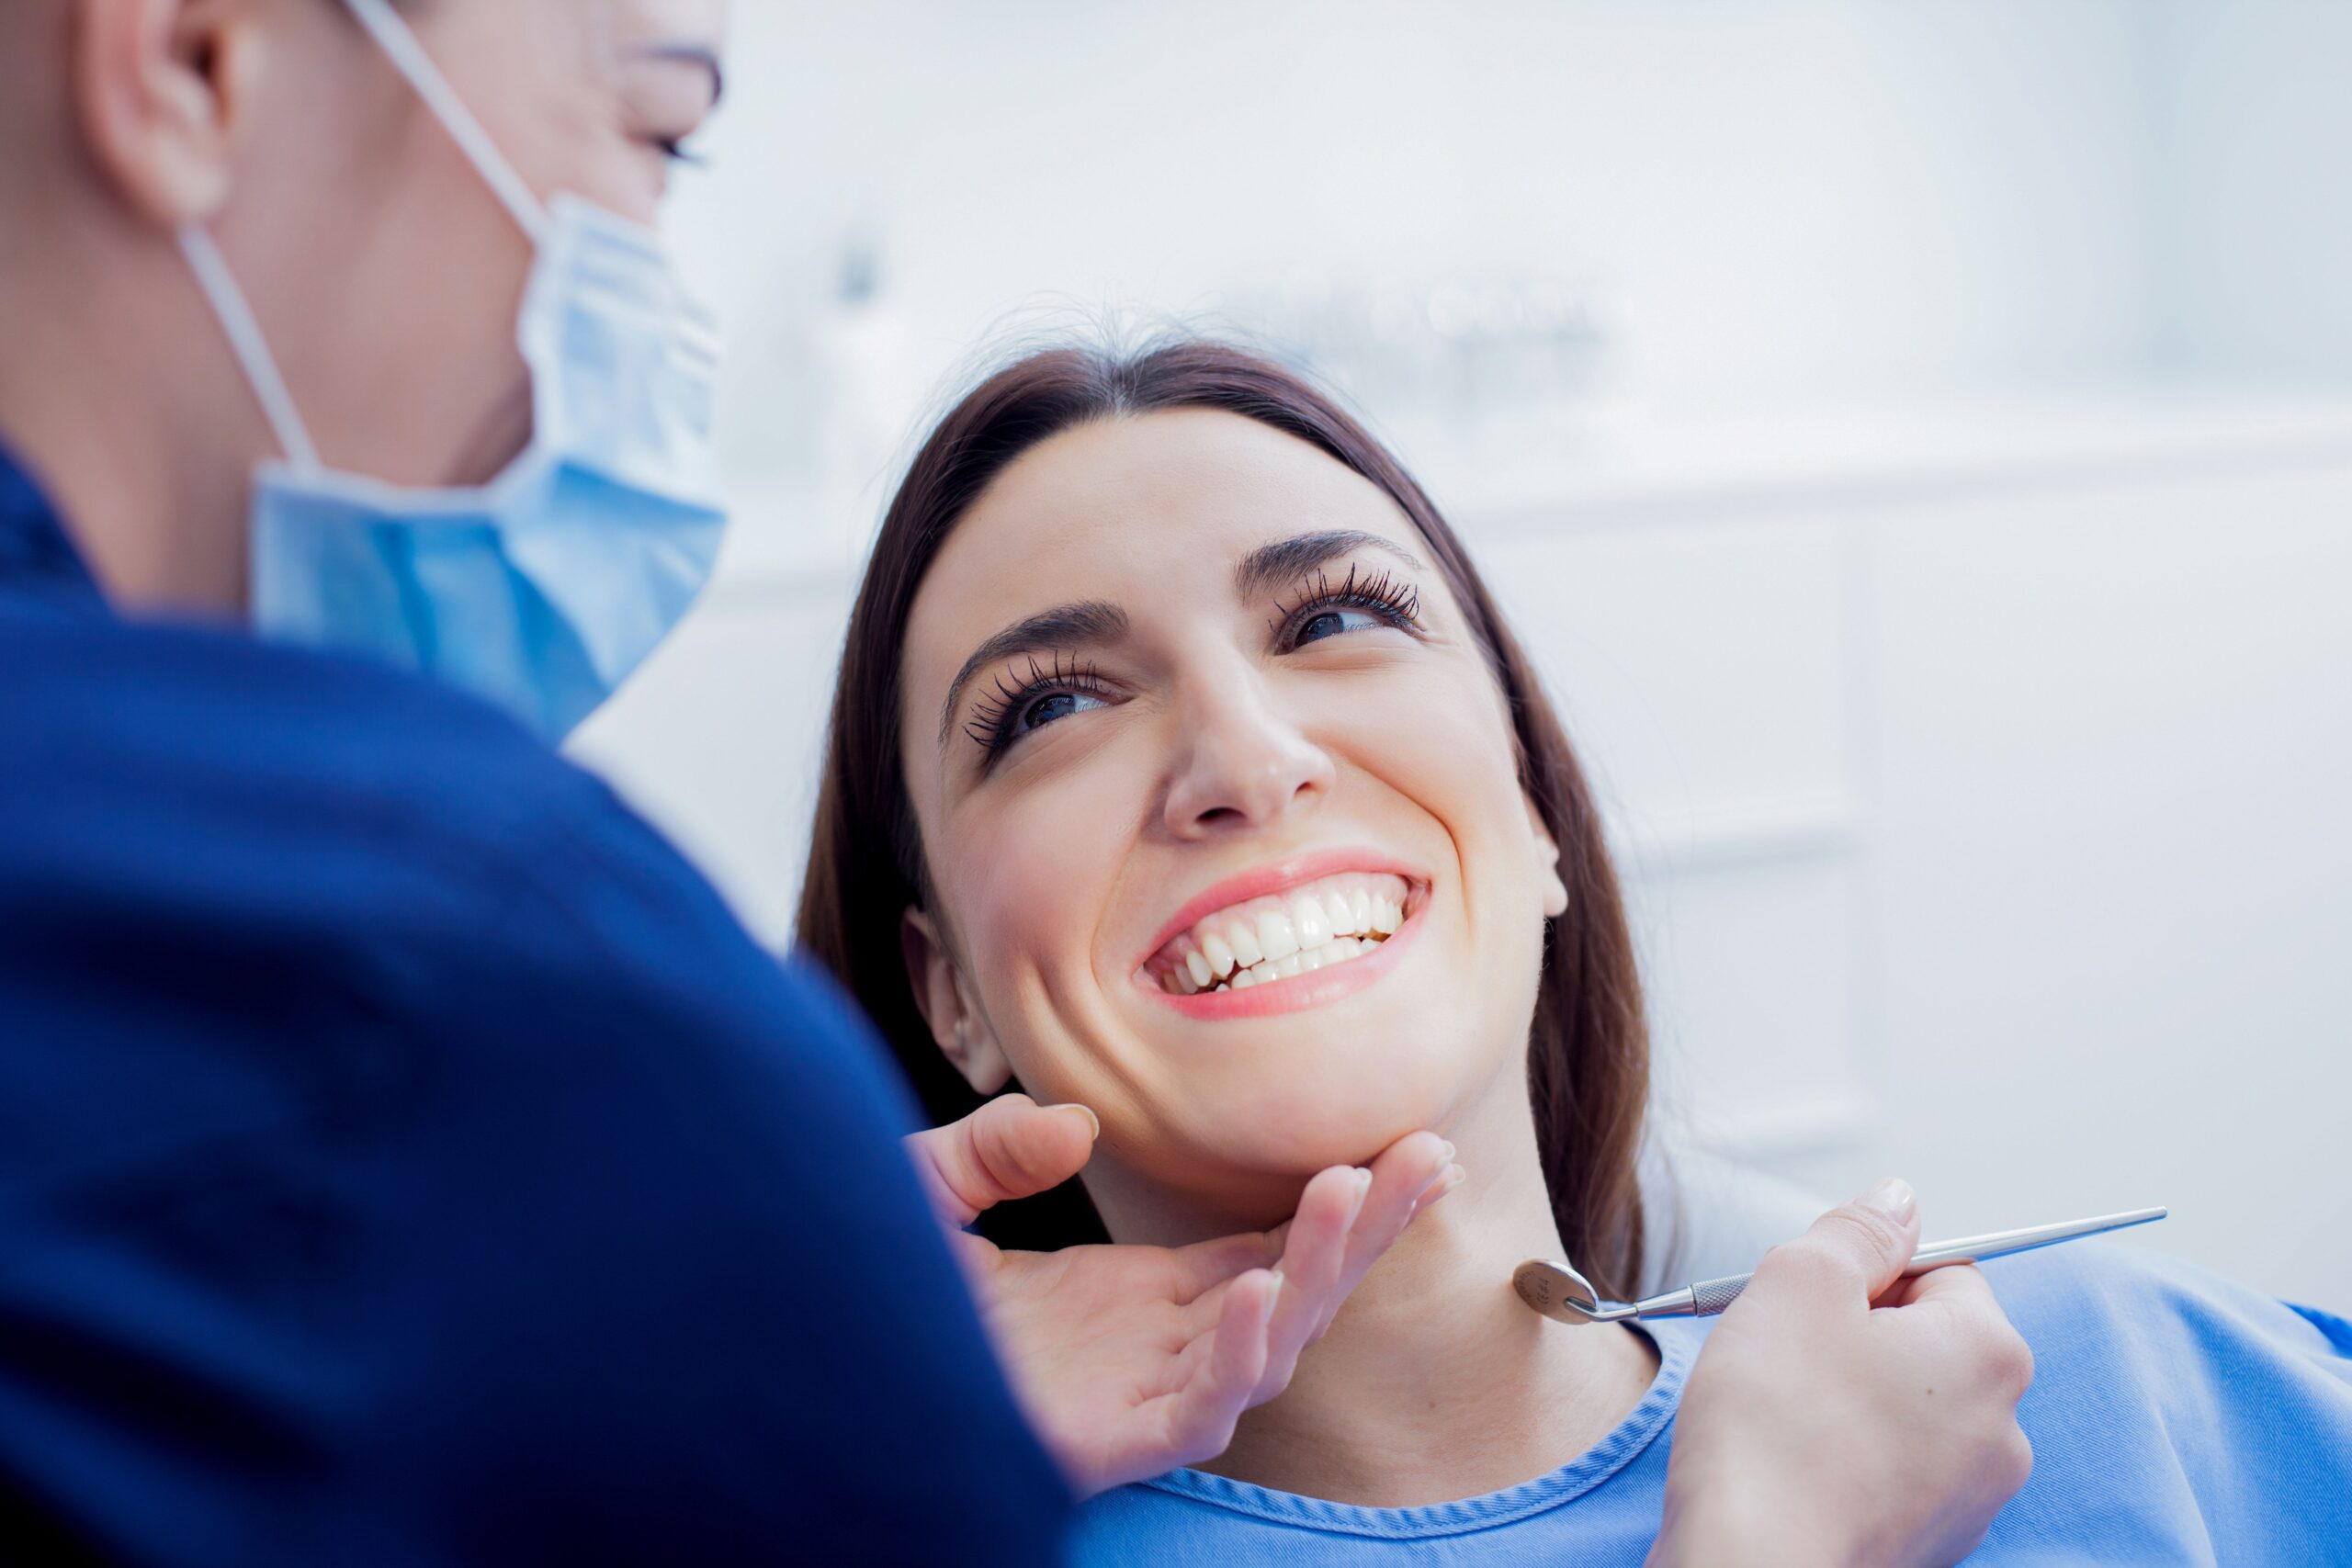 Wayne NE Dentist | Do I Really Need an Exam?